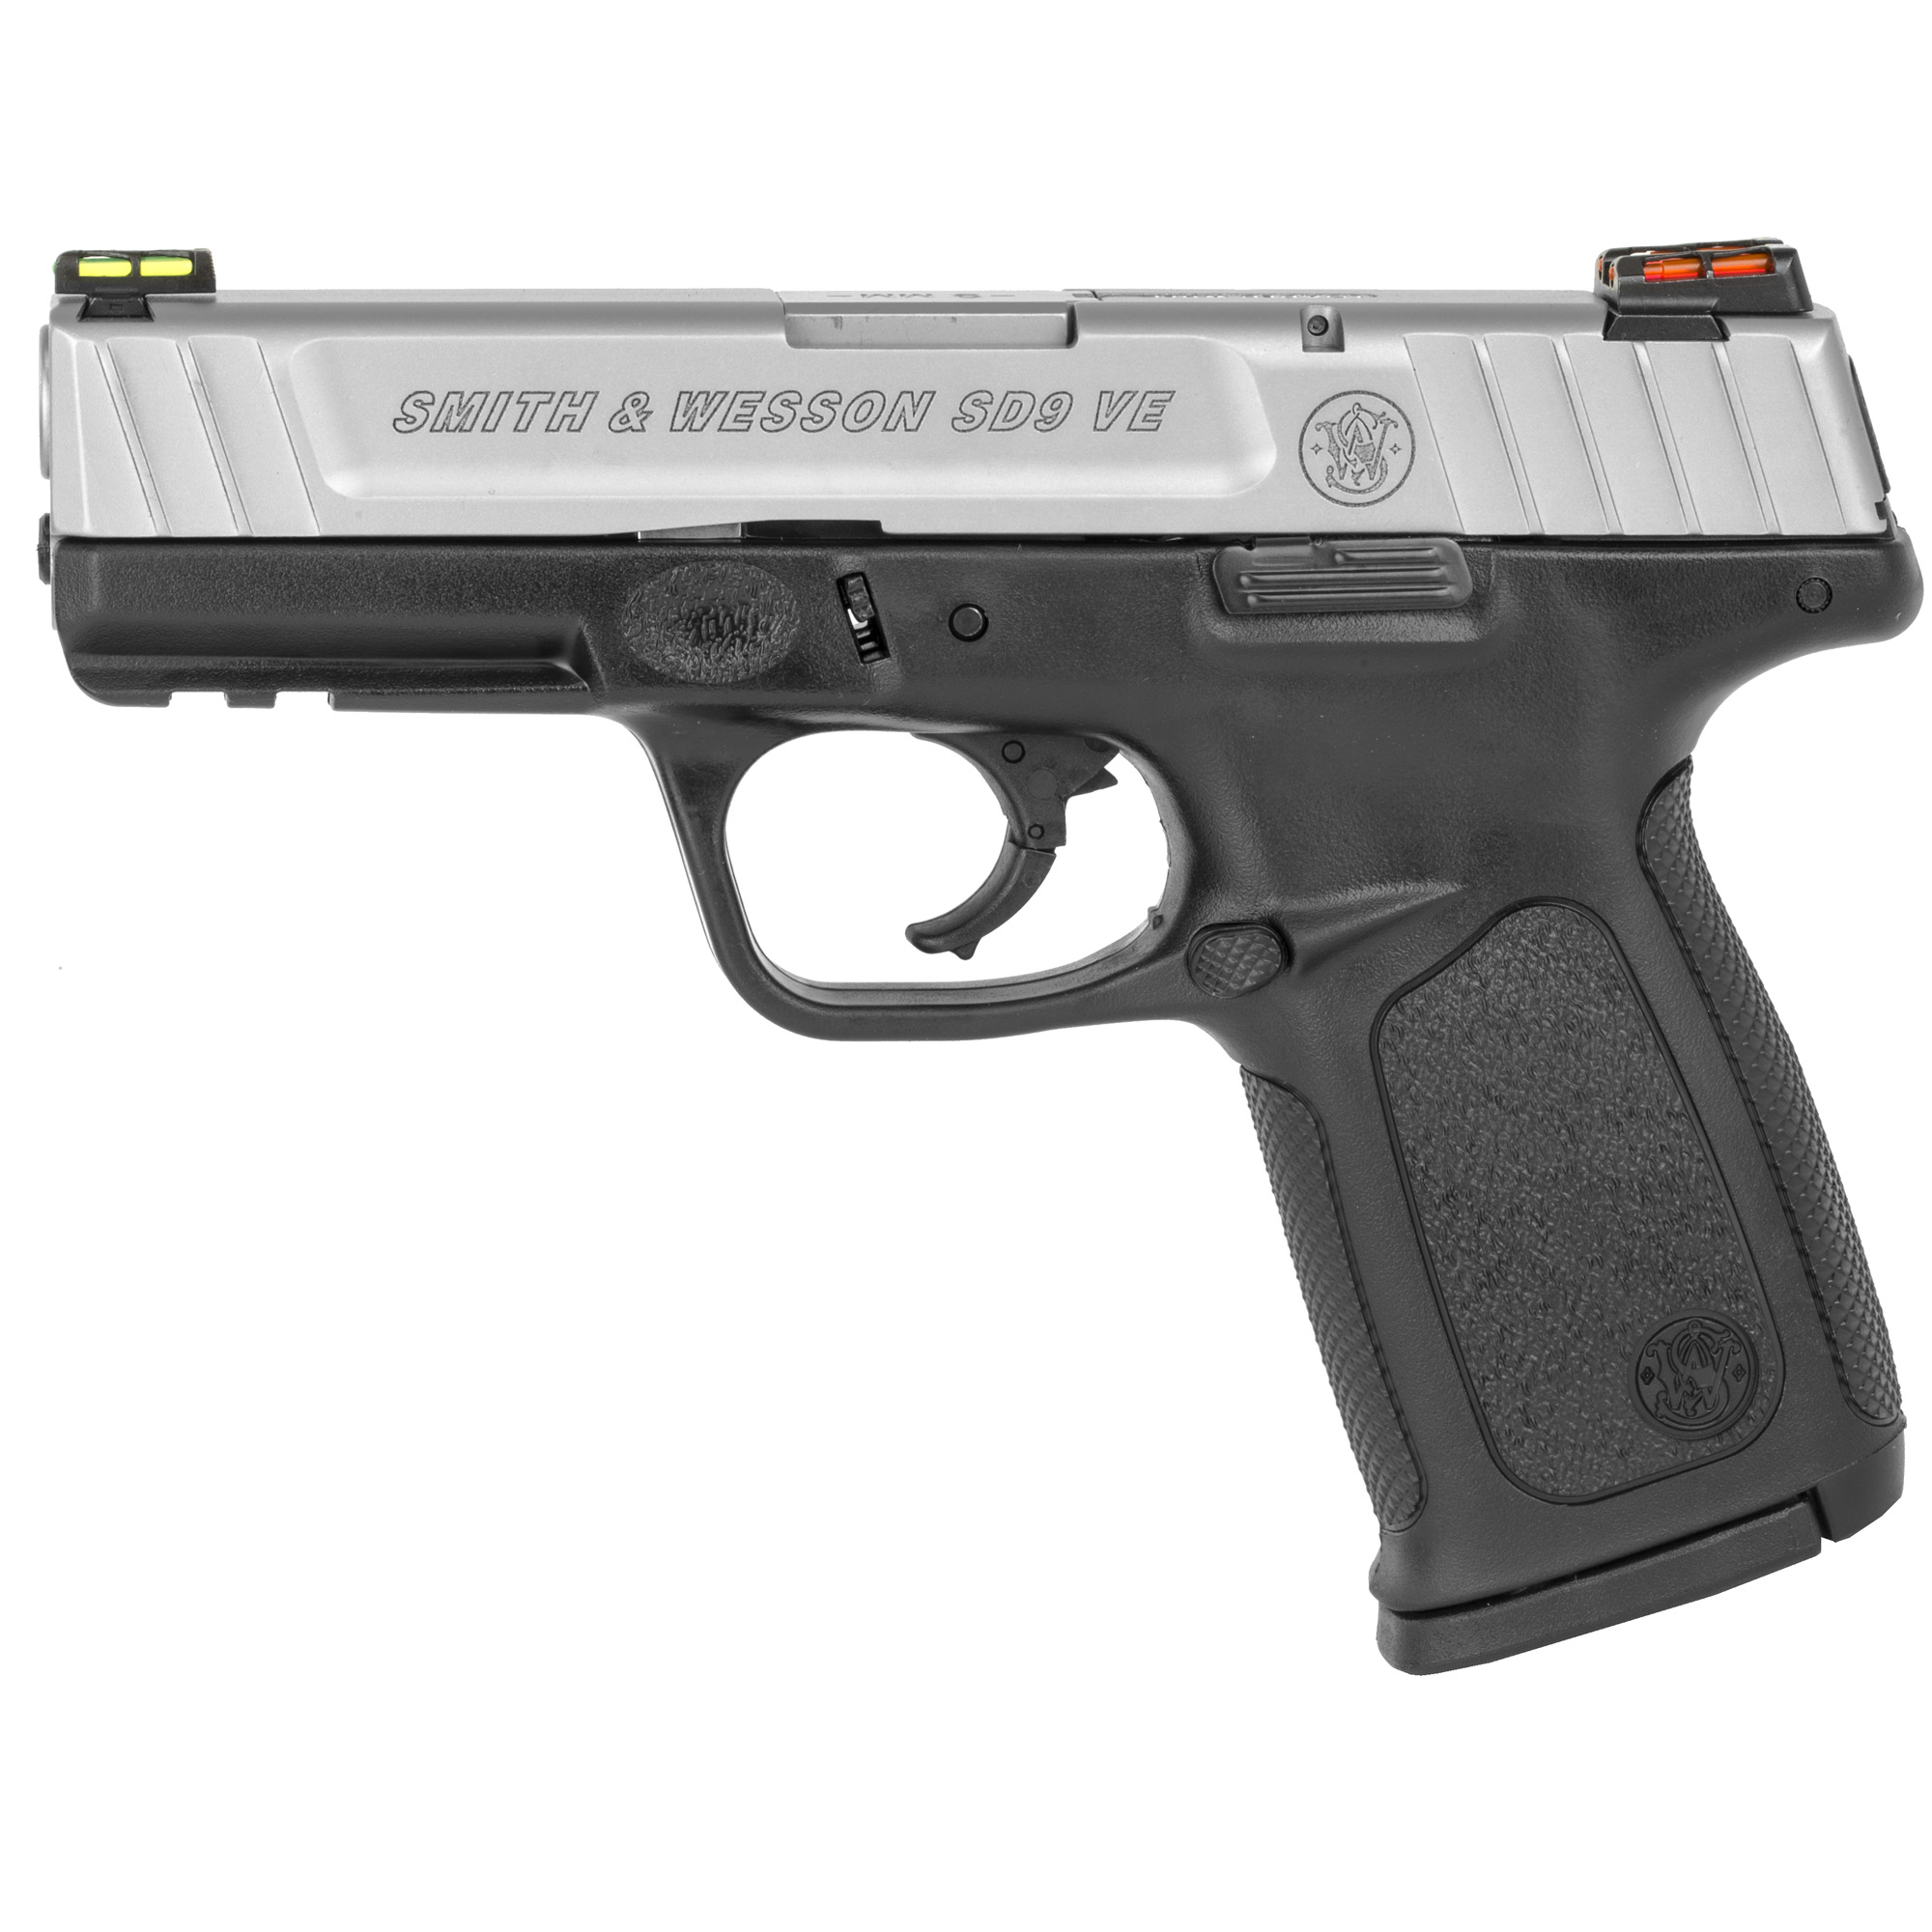 "The Smith & Wesson Model SD9VE includes the exclusive SDT (Self Defense Trigger) for optimal"" consistent combat effective trigger pulls from the first round to last. Standard white dot sights provide a crisp and clean sight picture that's easy to pick up and fast to reacquire. Mounting accessories such as white lights and lasers is made easy due to the picatinny style dust cover rail. A slim and ergonomic textured grip provides sure purchase in dicey situations. The SD9VE also features textured finger locators"" which make it easy to draw with a consistent grip each and every time. This package comes with two magazines."